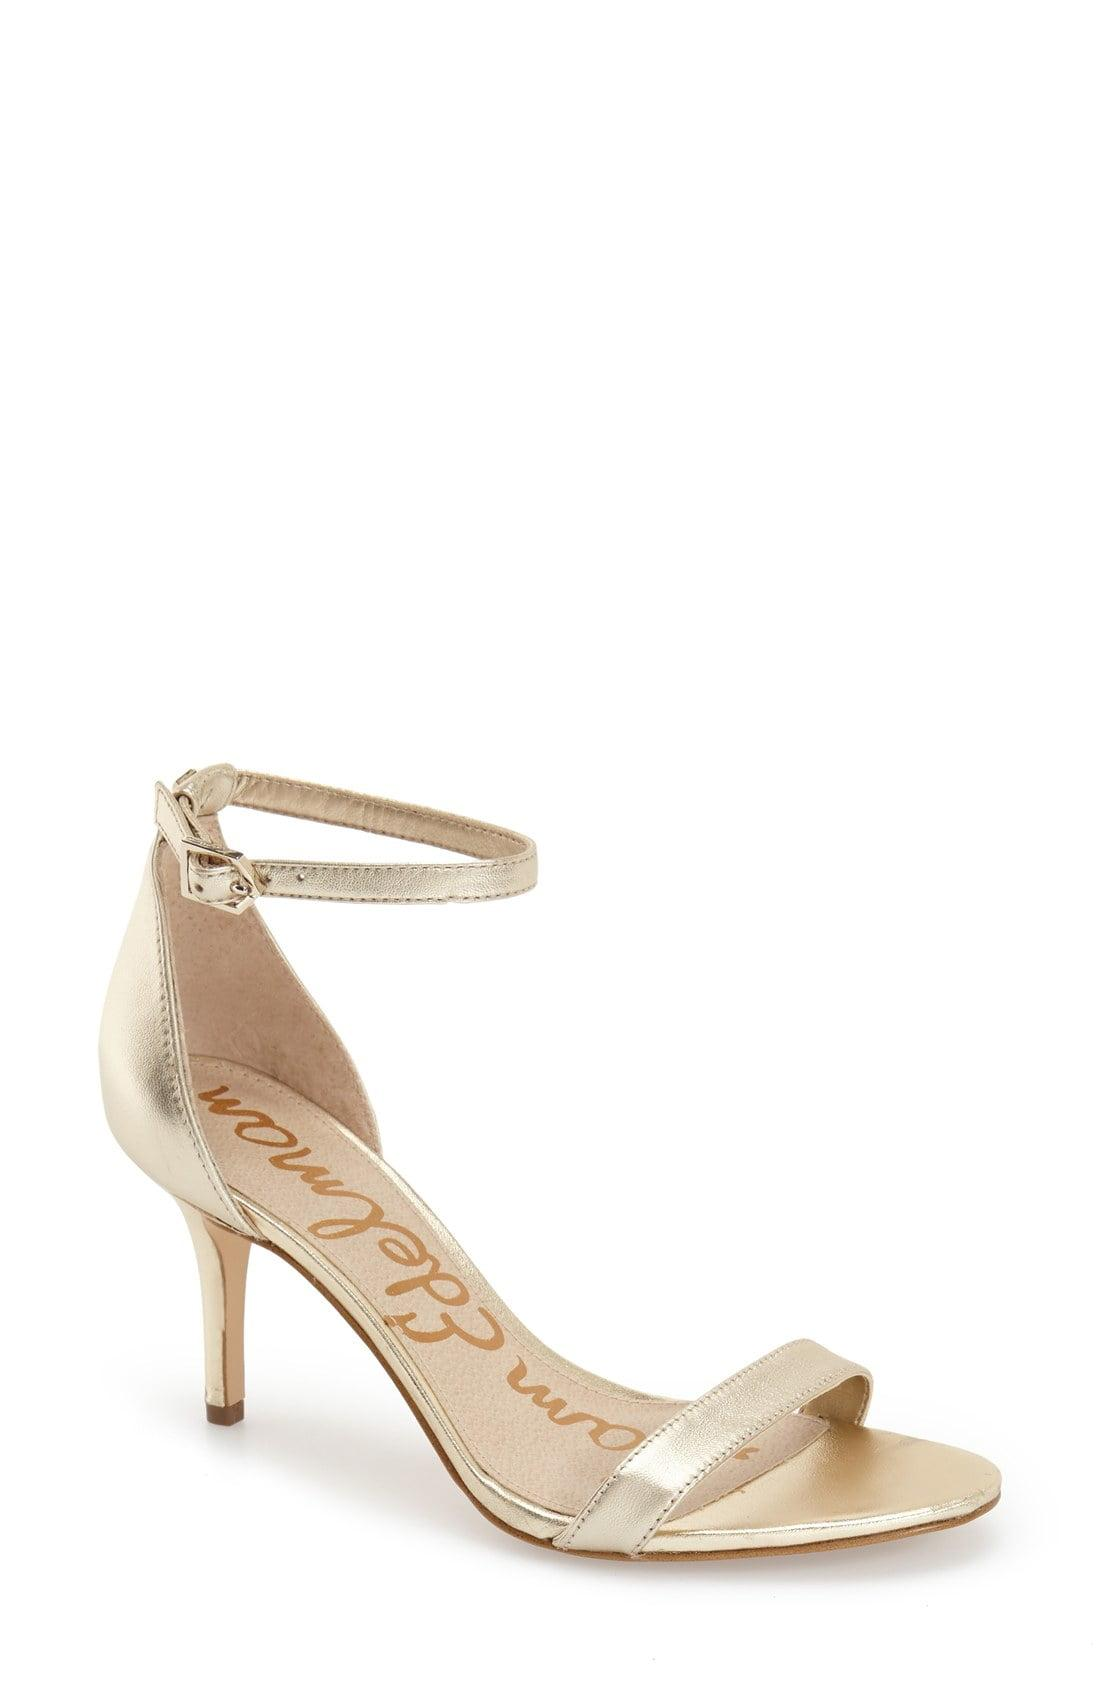 be8c80fbb Sam Edelman - Natural  patti  Ankle Strap Sandal - Lyst. View fullscreen